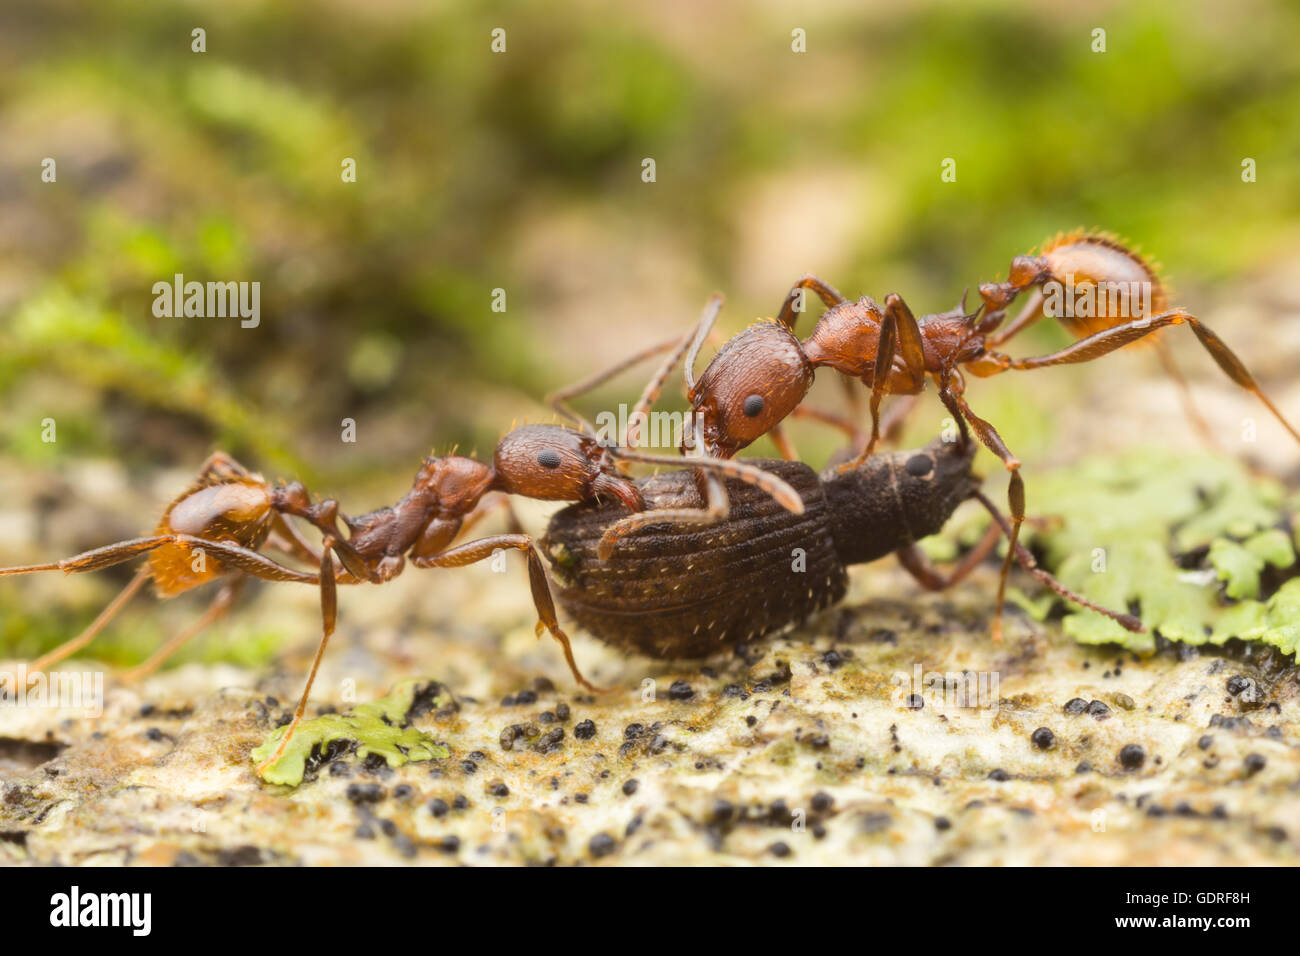 Spine-waisted Ant (Aphaenogaster fulva) workers carry scavenged food back to their nest . - Stock Image